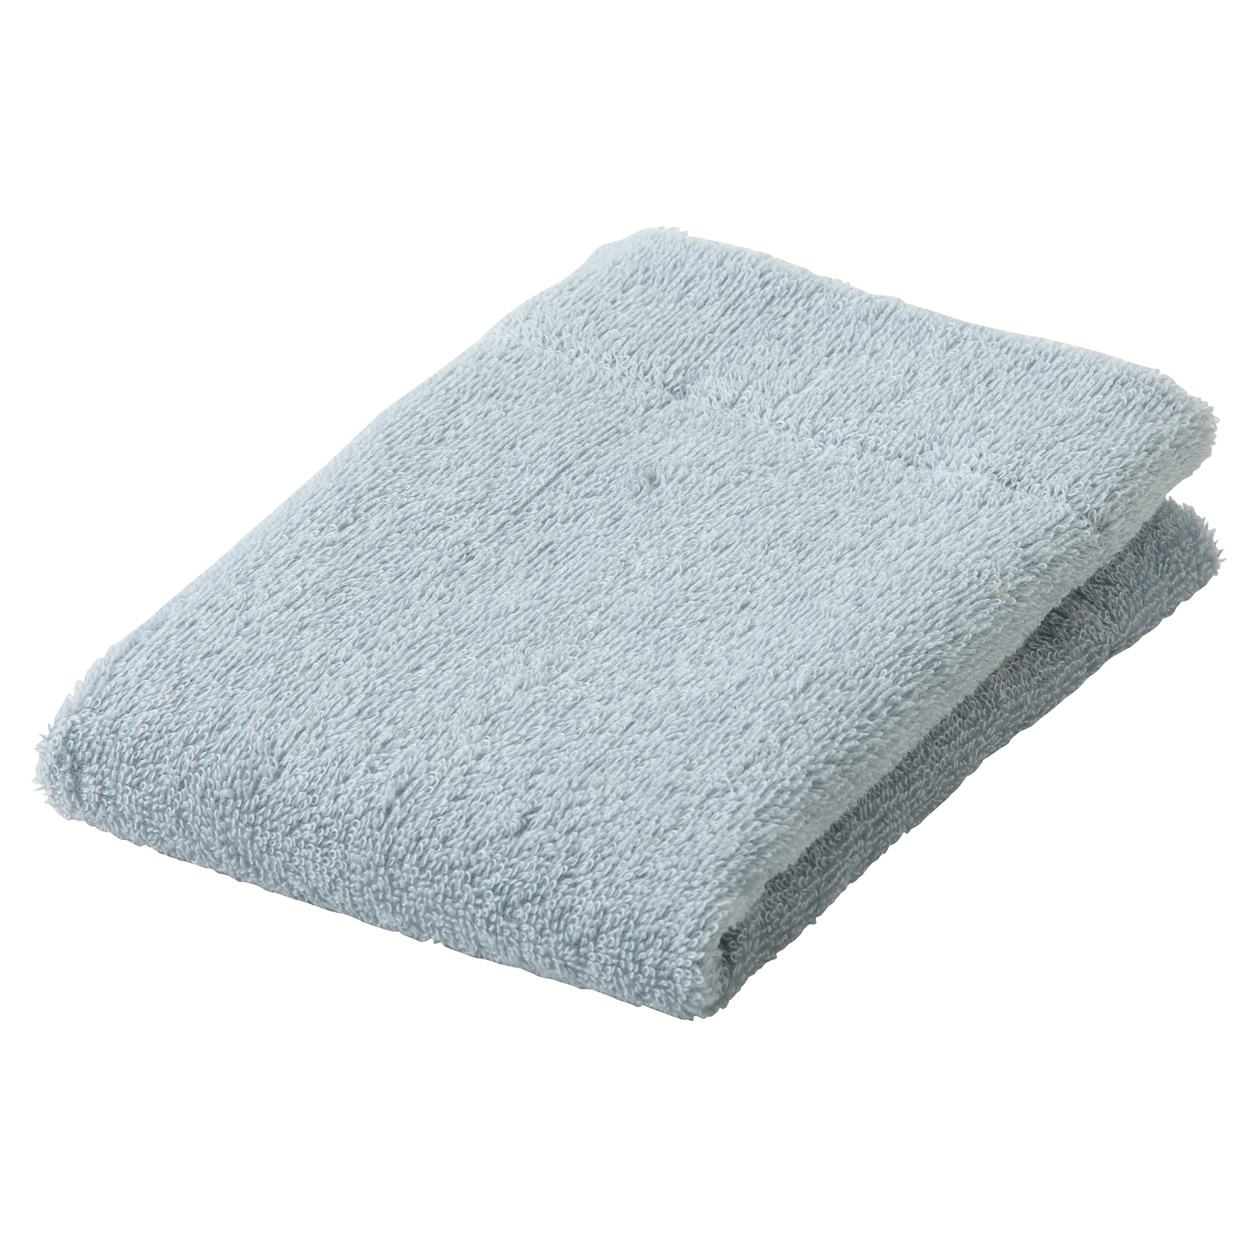 light blue thin Hand towel